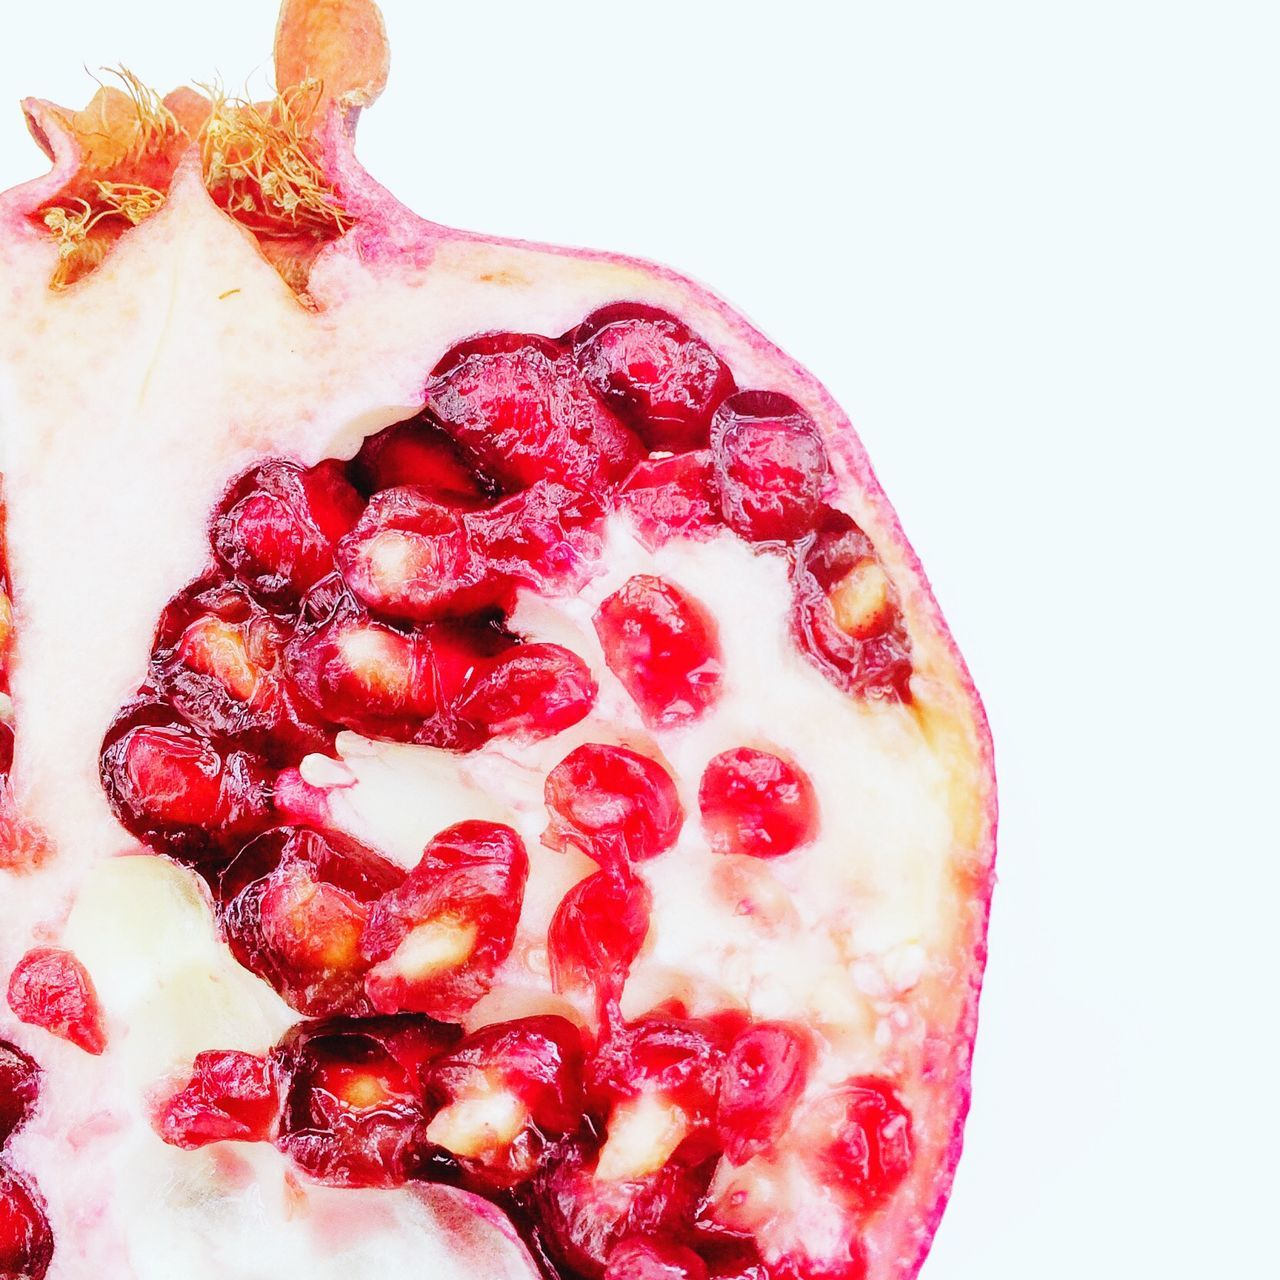 Pomegranate Pomegranate Fruit Seeds Red Pith Food Superfood Seed Pod Healthy Diet